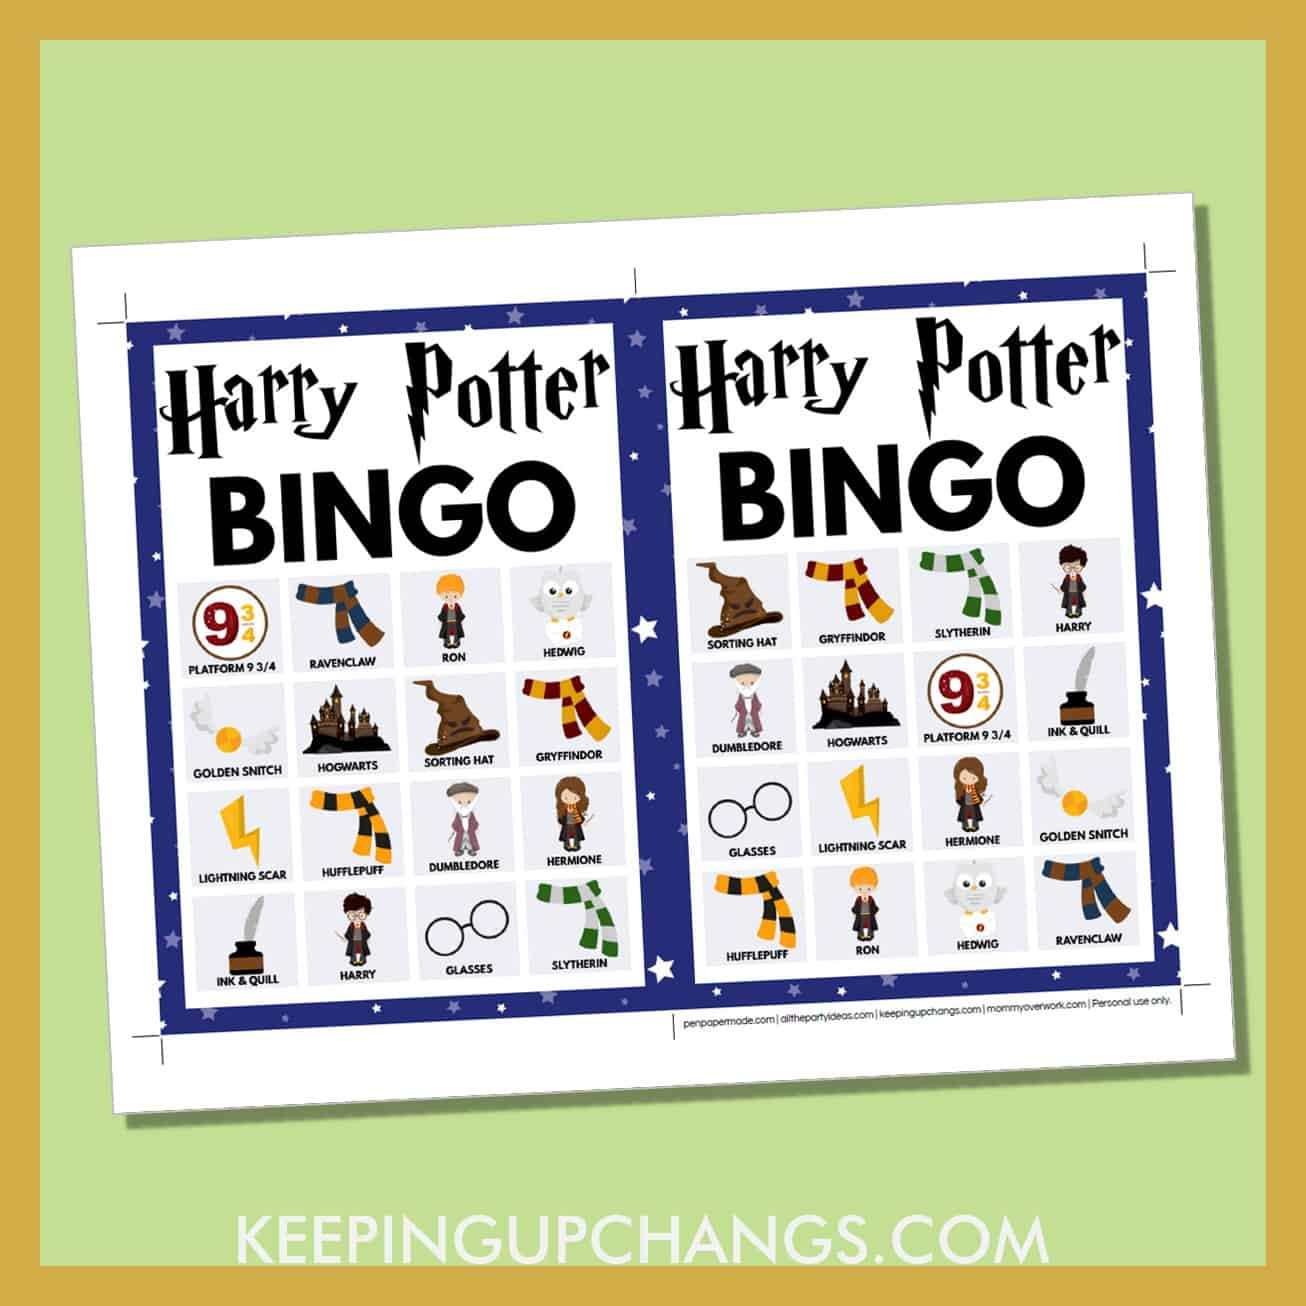 free harry potter bingo card 4x4 5x7 game boards with images and text words..